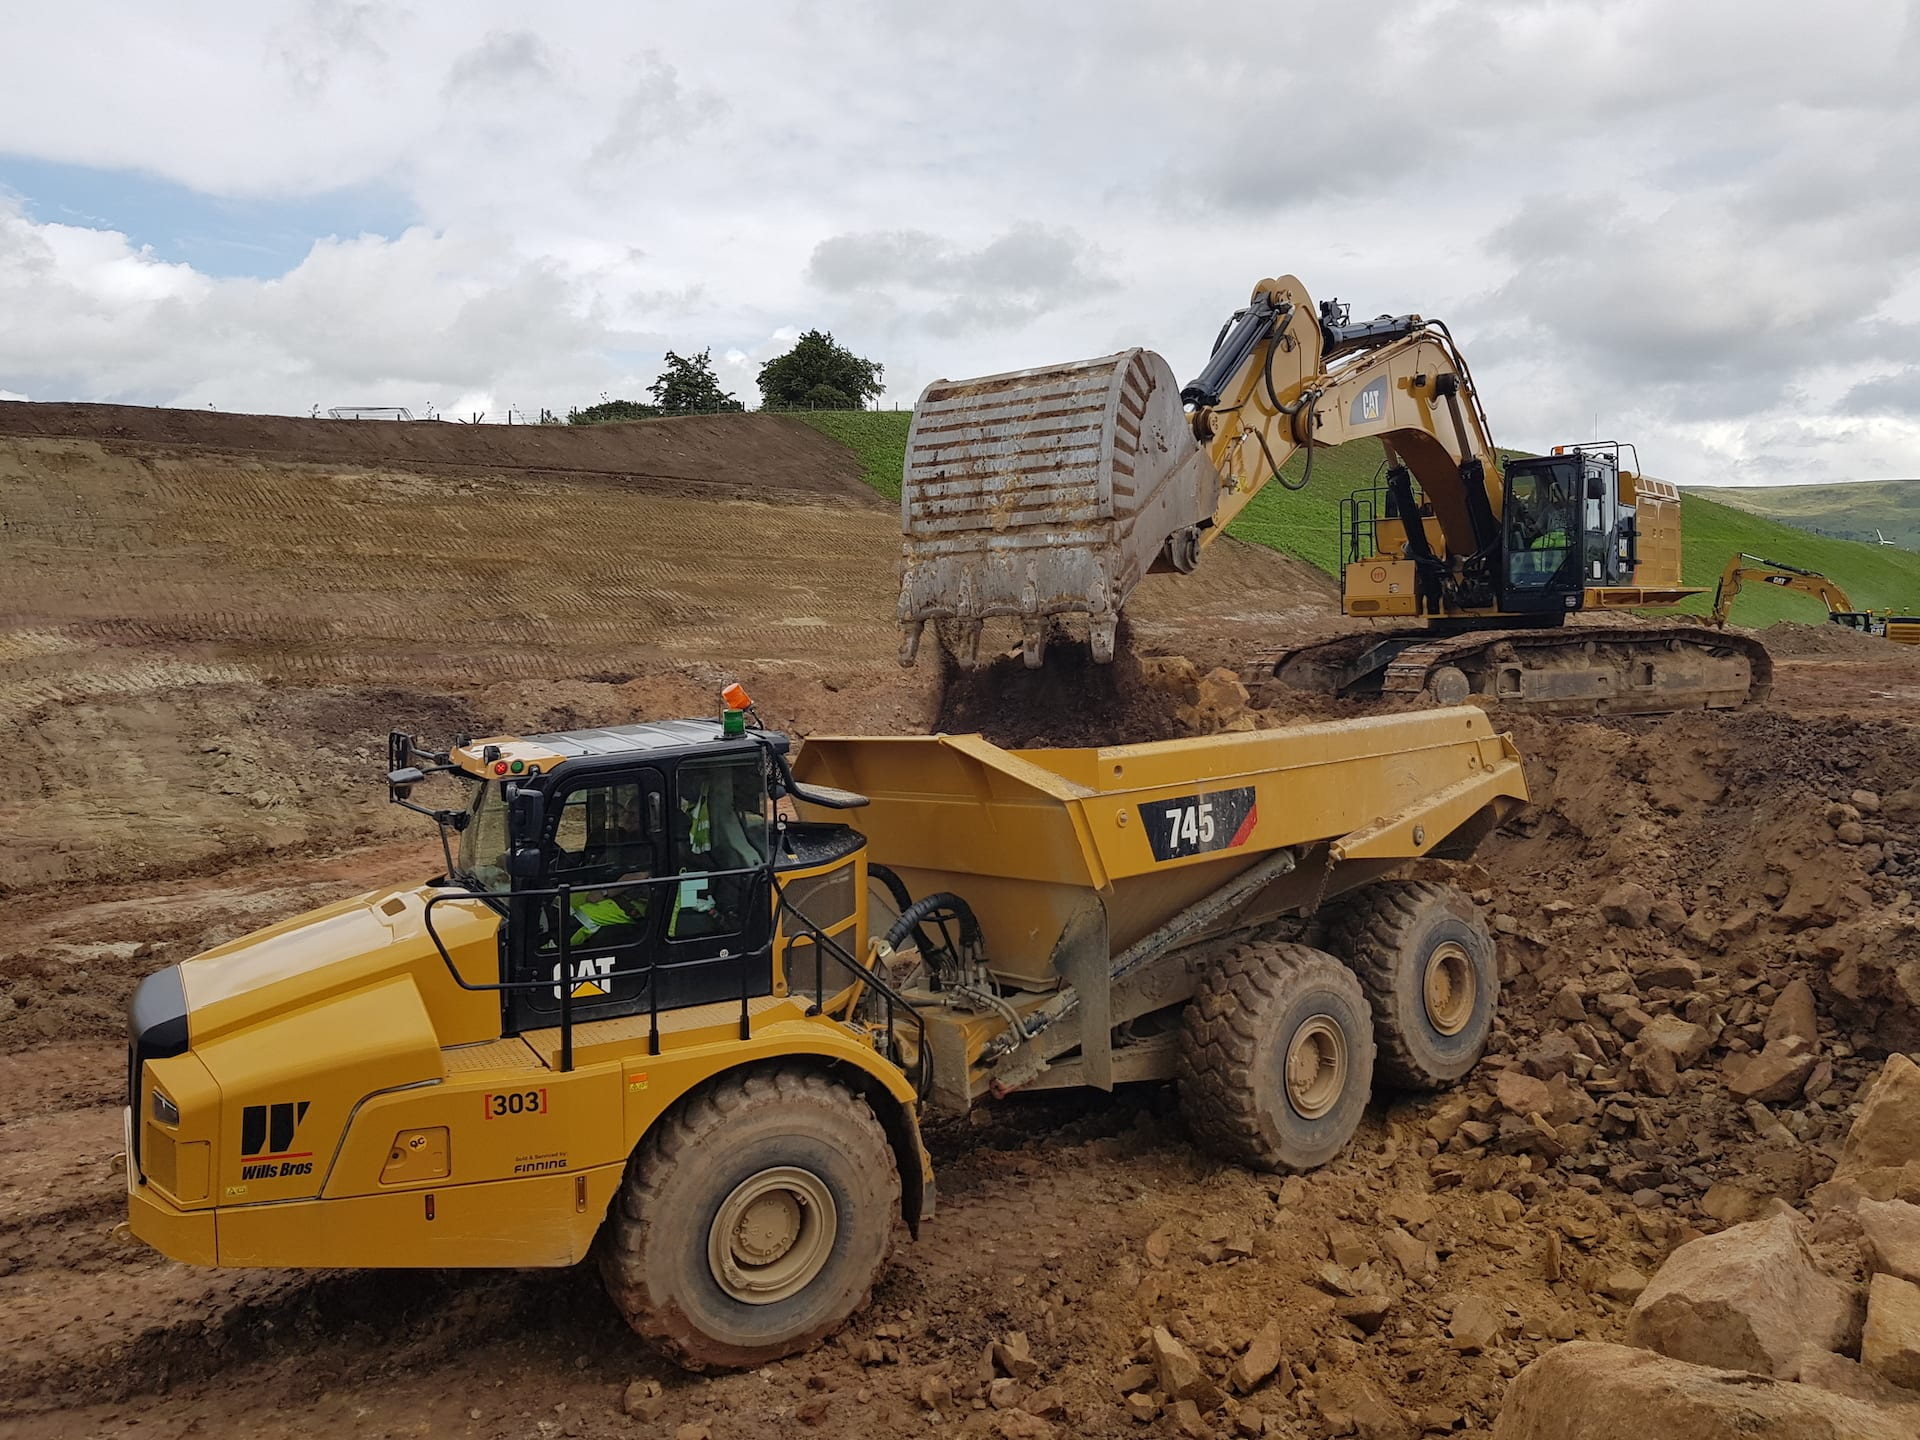 Inspectec Ireland help to keep construction moving by ensuring machinery is properly inspected and safe for use